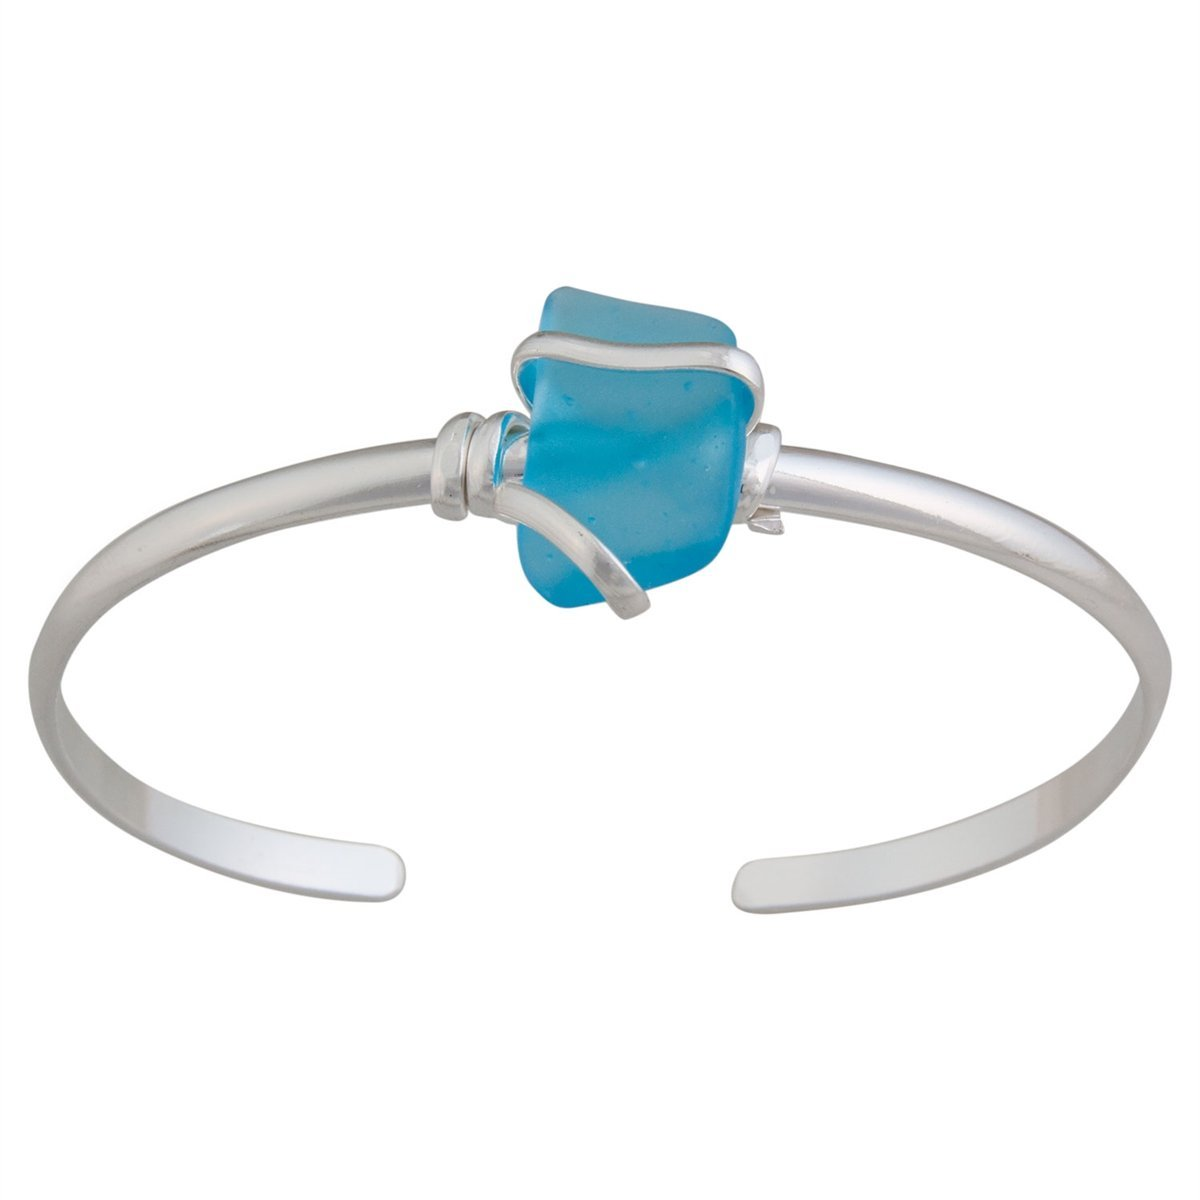 Alpaca Recycled Glass Mini Cuff - Aqua | Charles Albert Jewelry